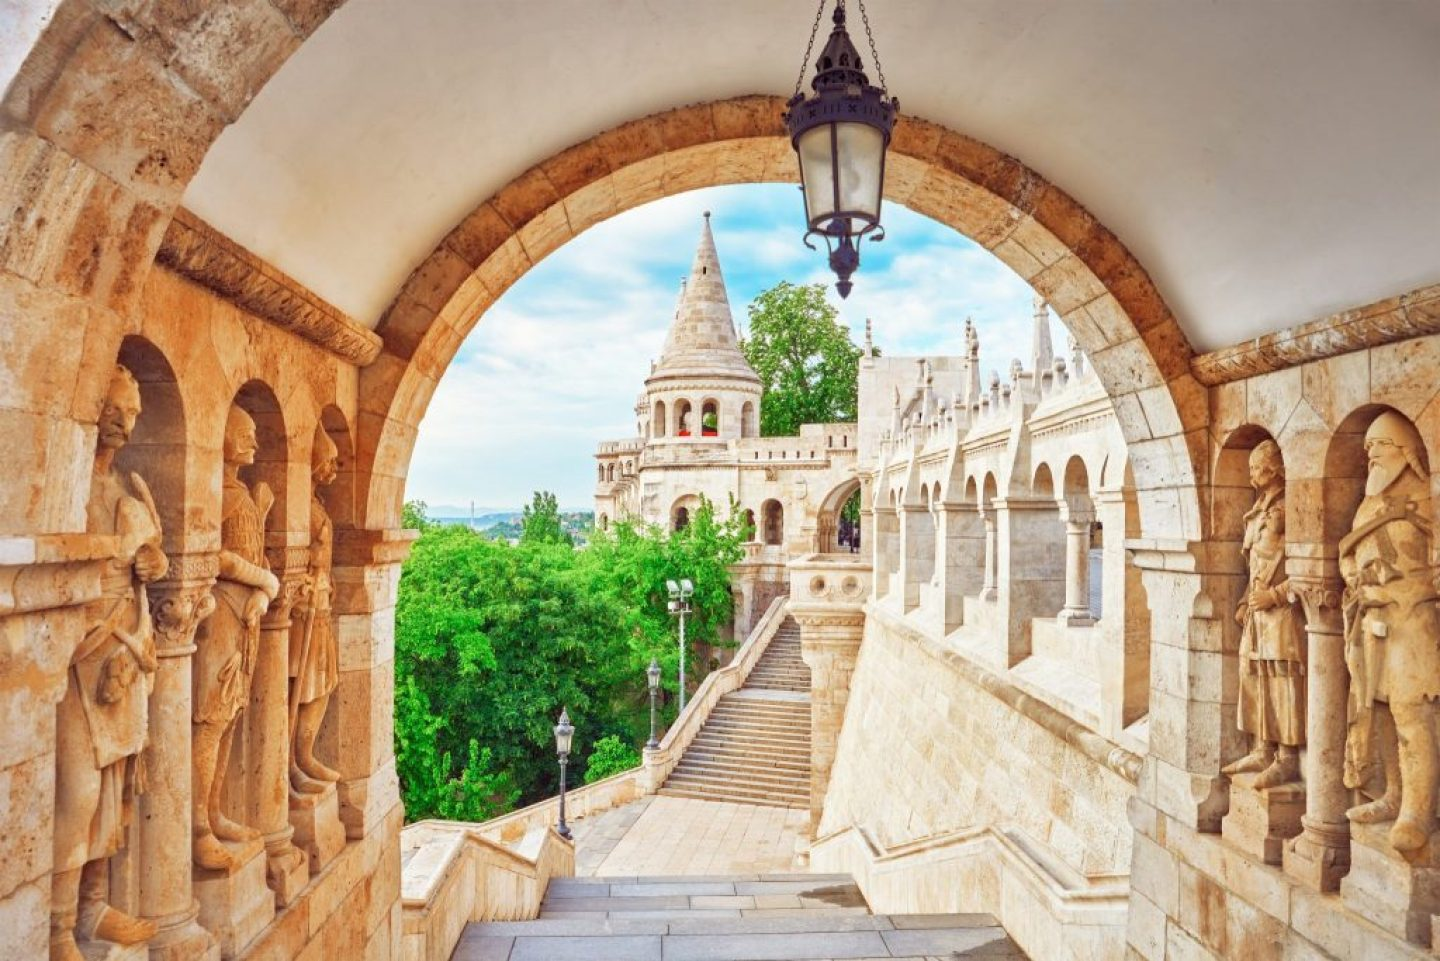 Fisherman's Bastion: part of a 2 days in budapest guide